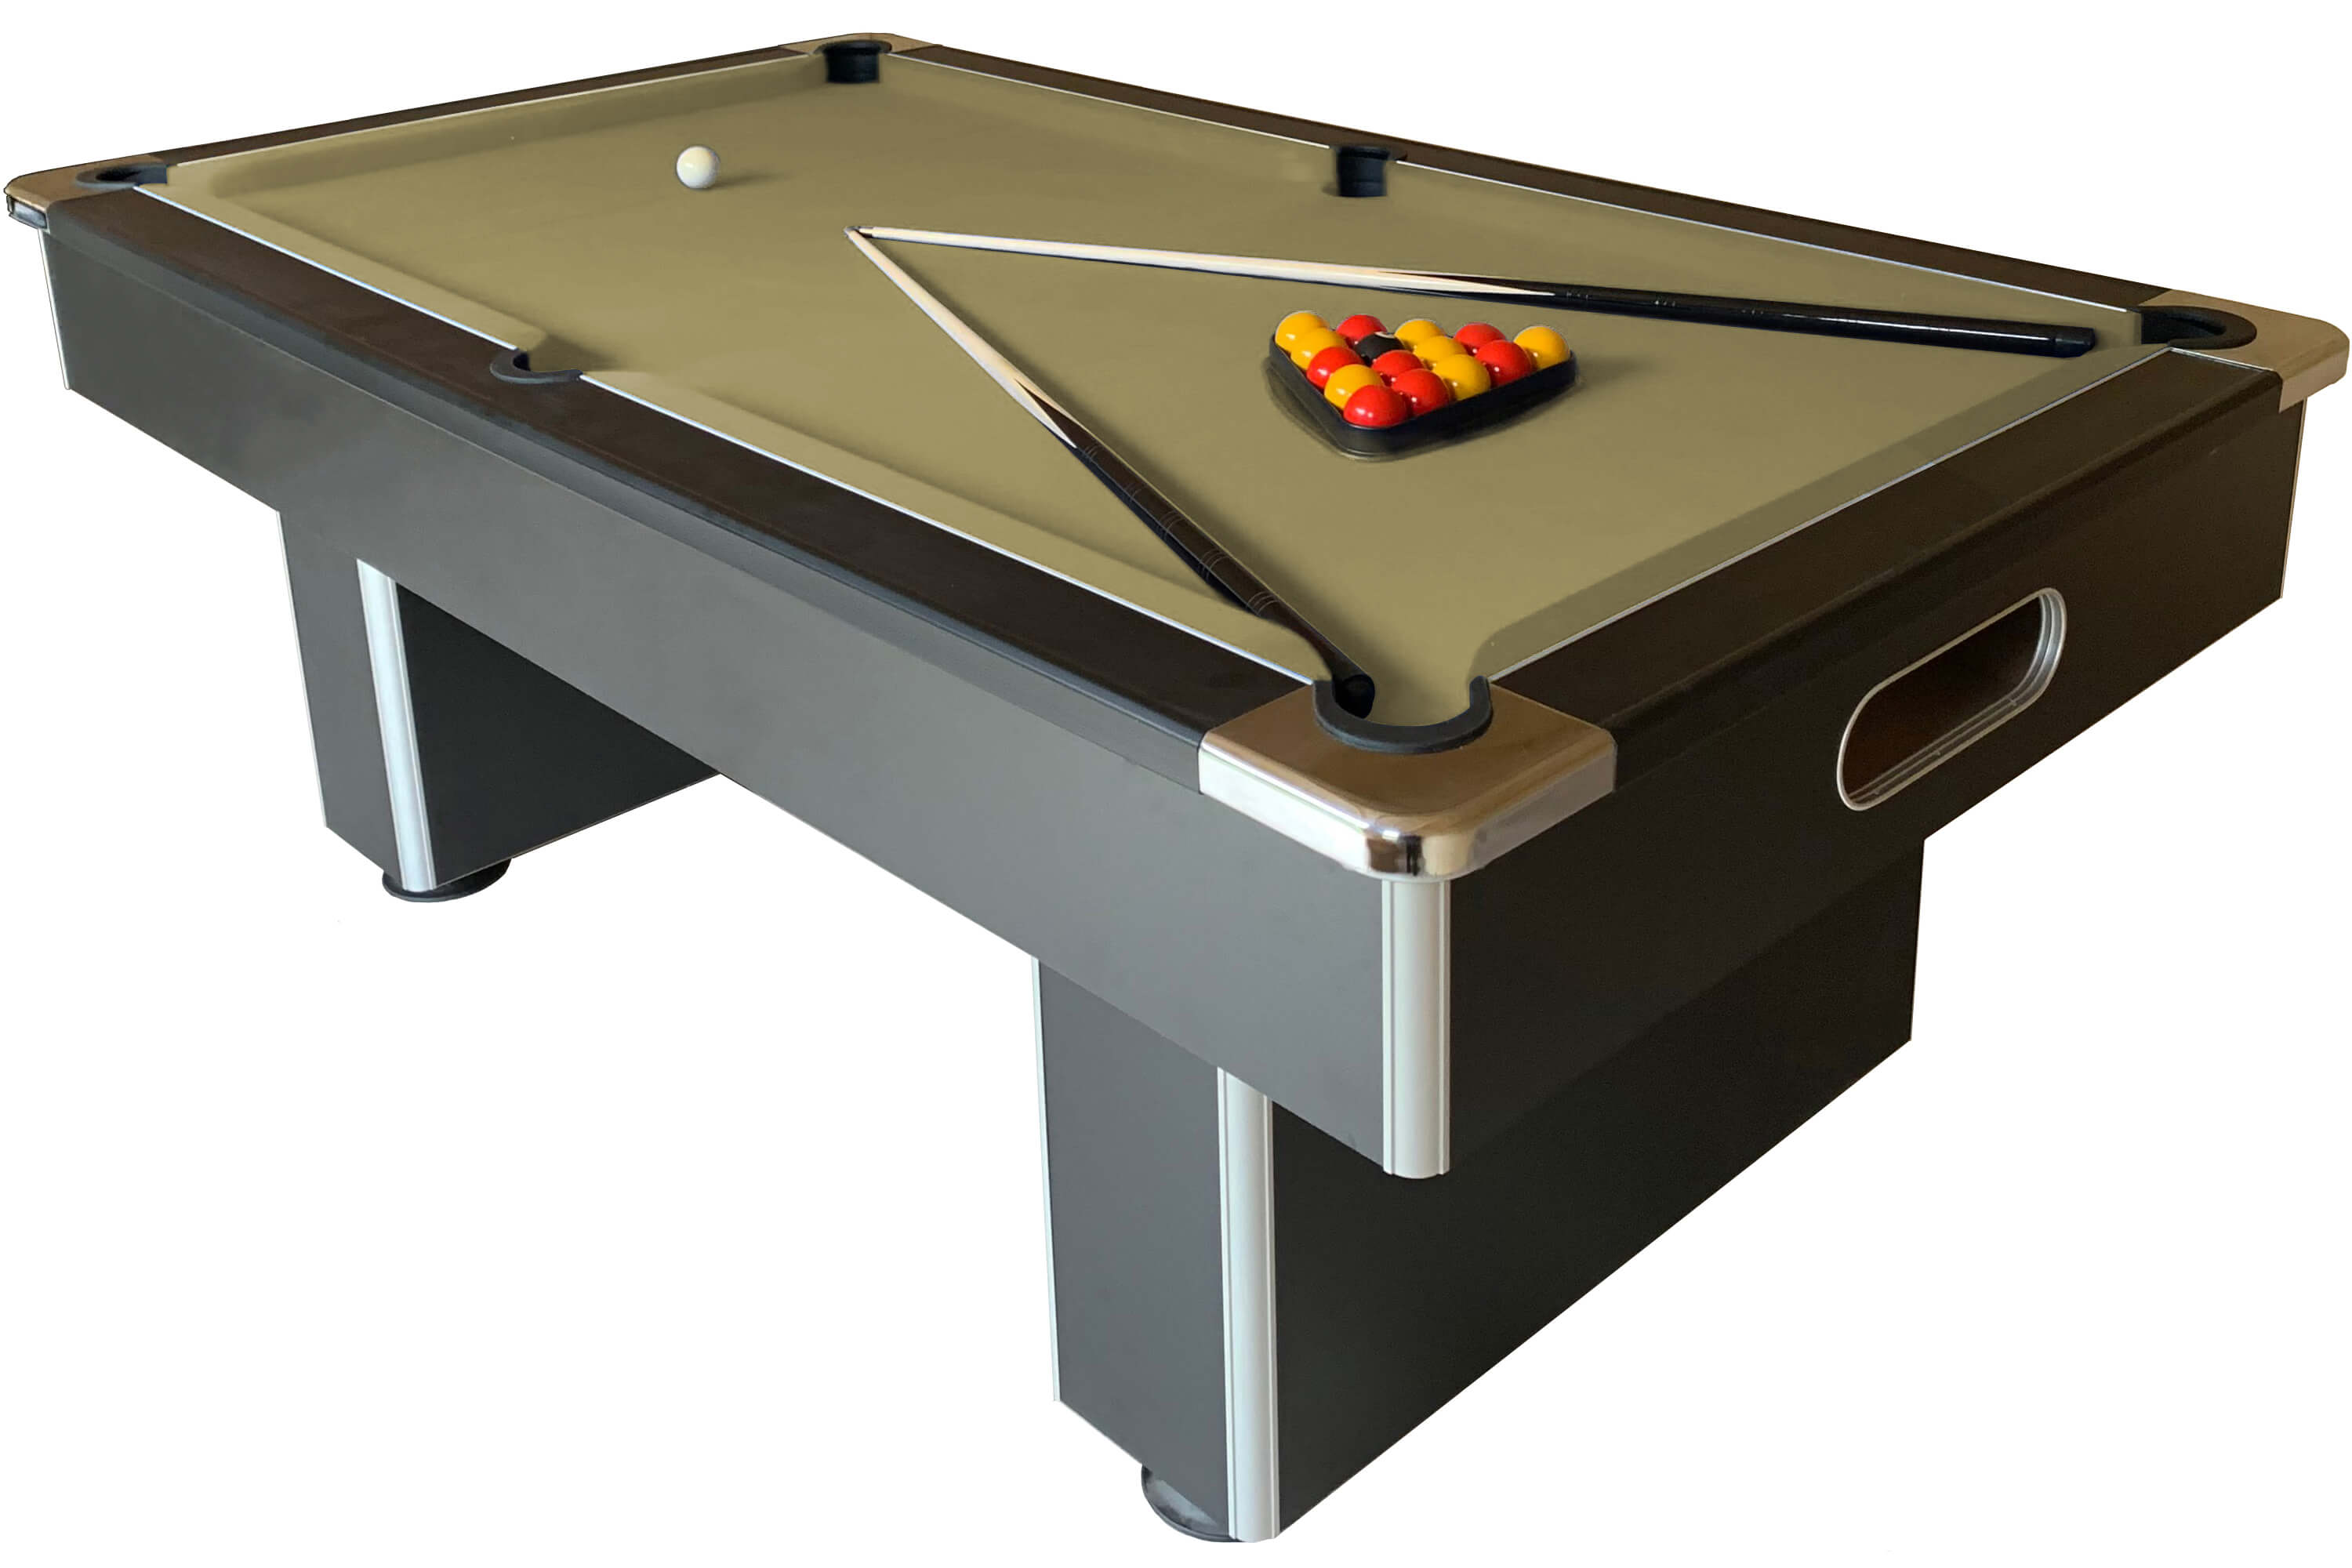 Peachy Slimline Slate Bed Pool Table Home Interior And Landscaping Sapresignezvosmurscom